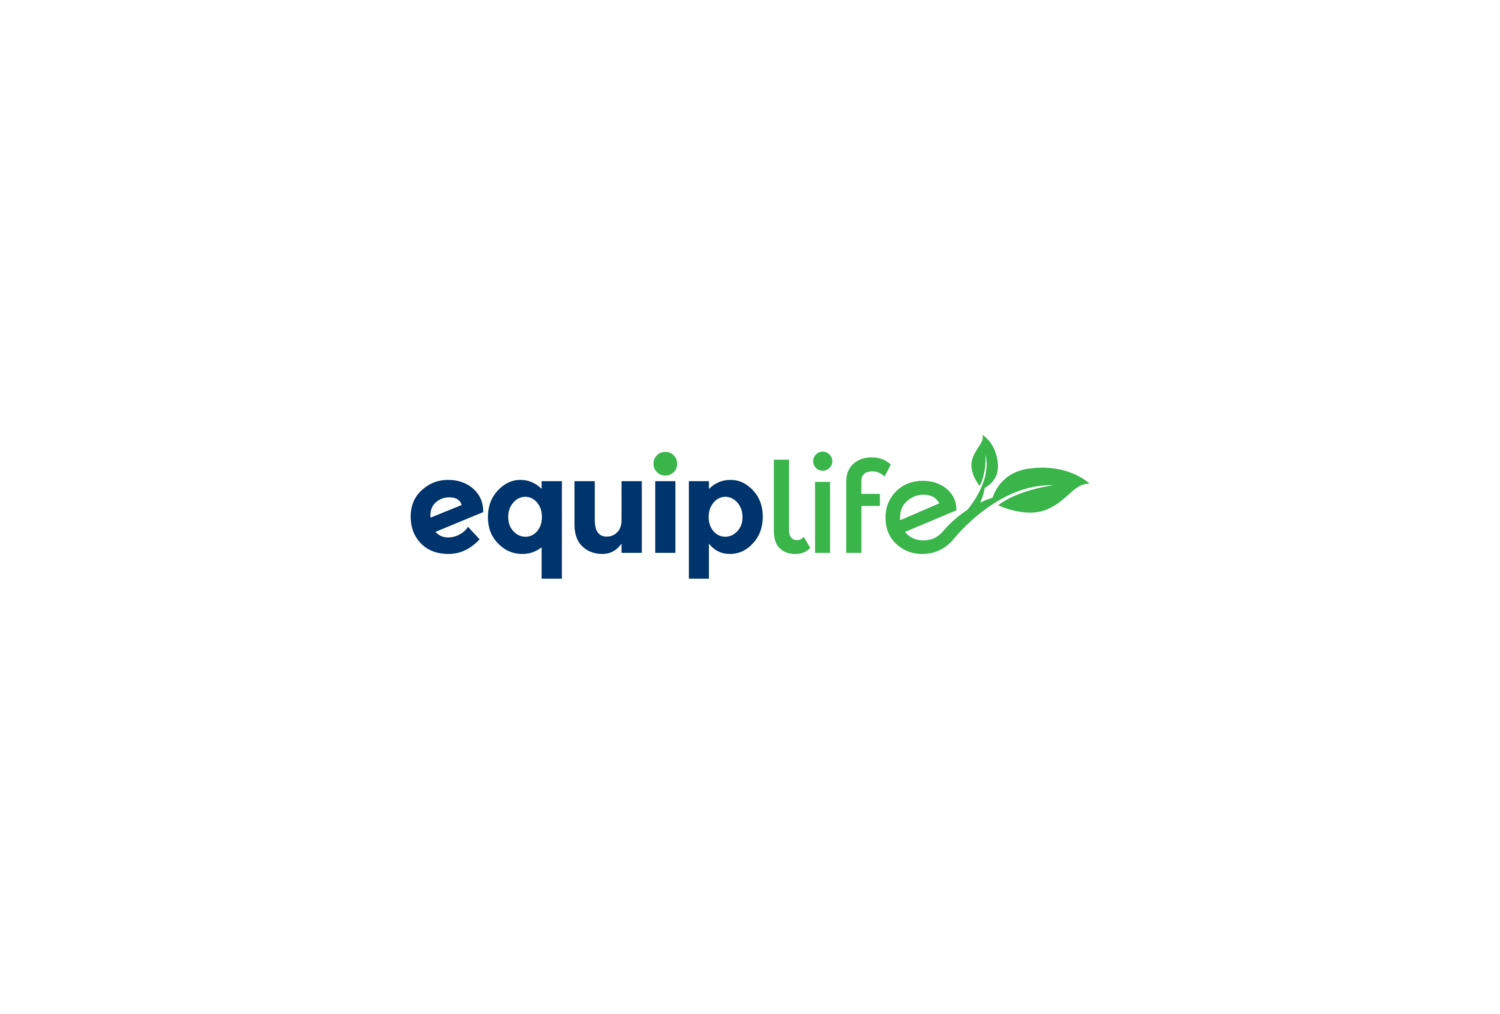 equip.life